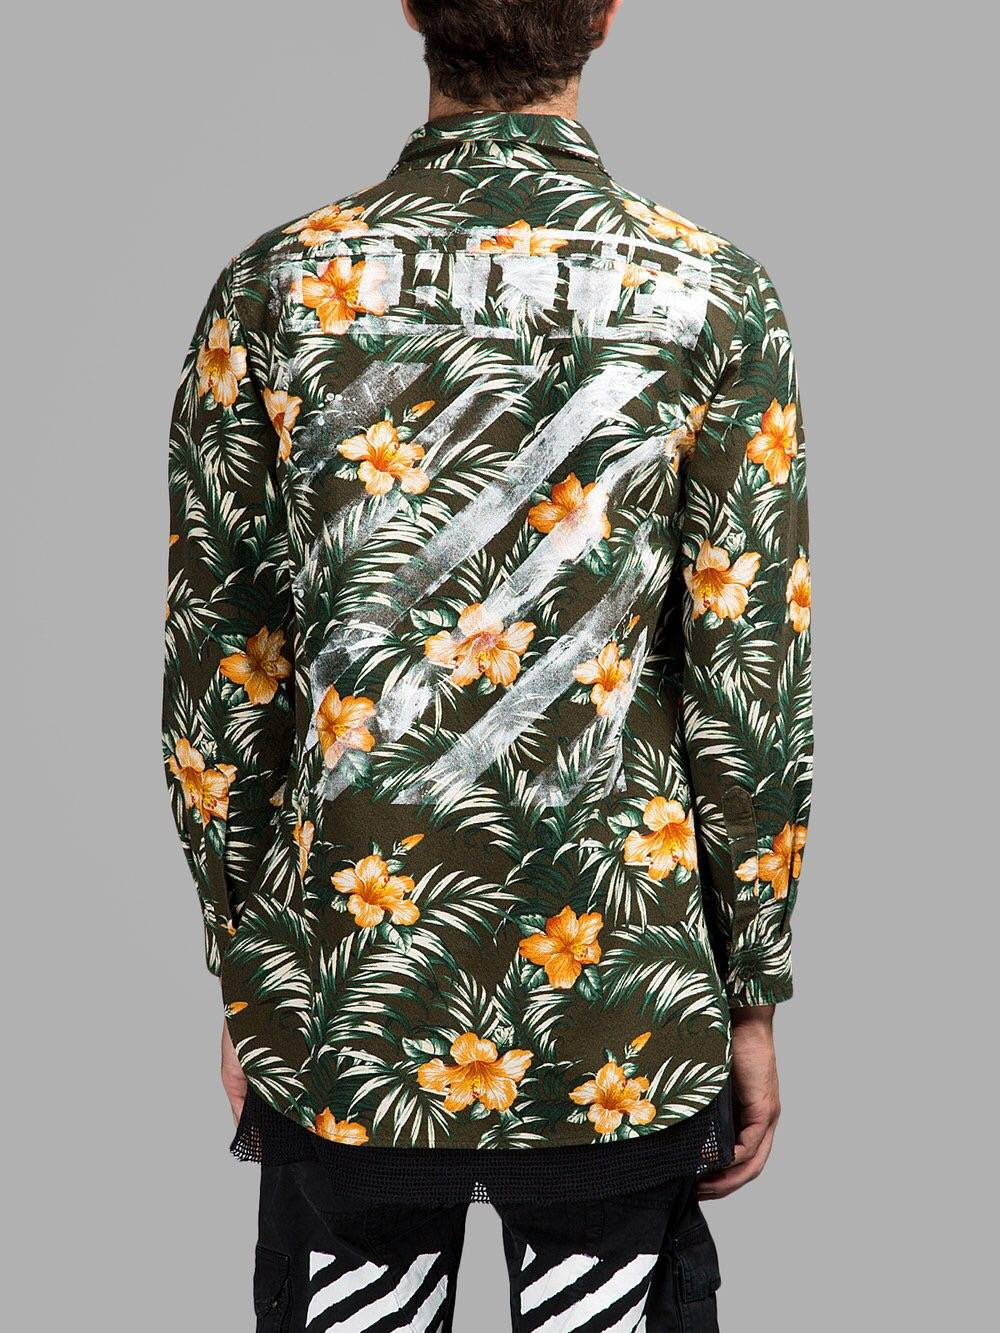 Off-White Pattern floral shirt Get New Knock Off New Discount Codes Clearance Store YqkD1